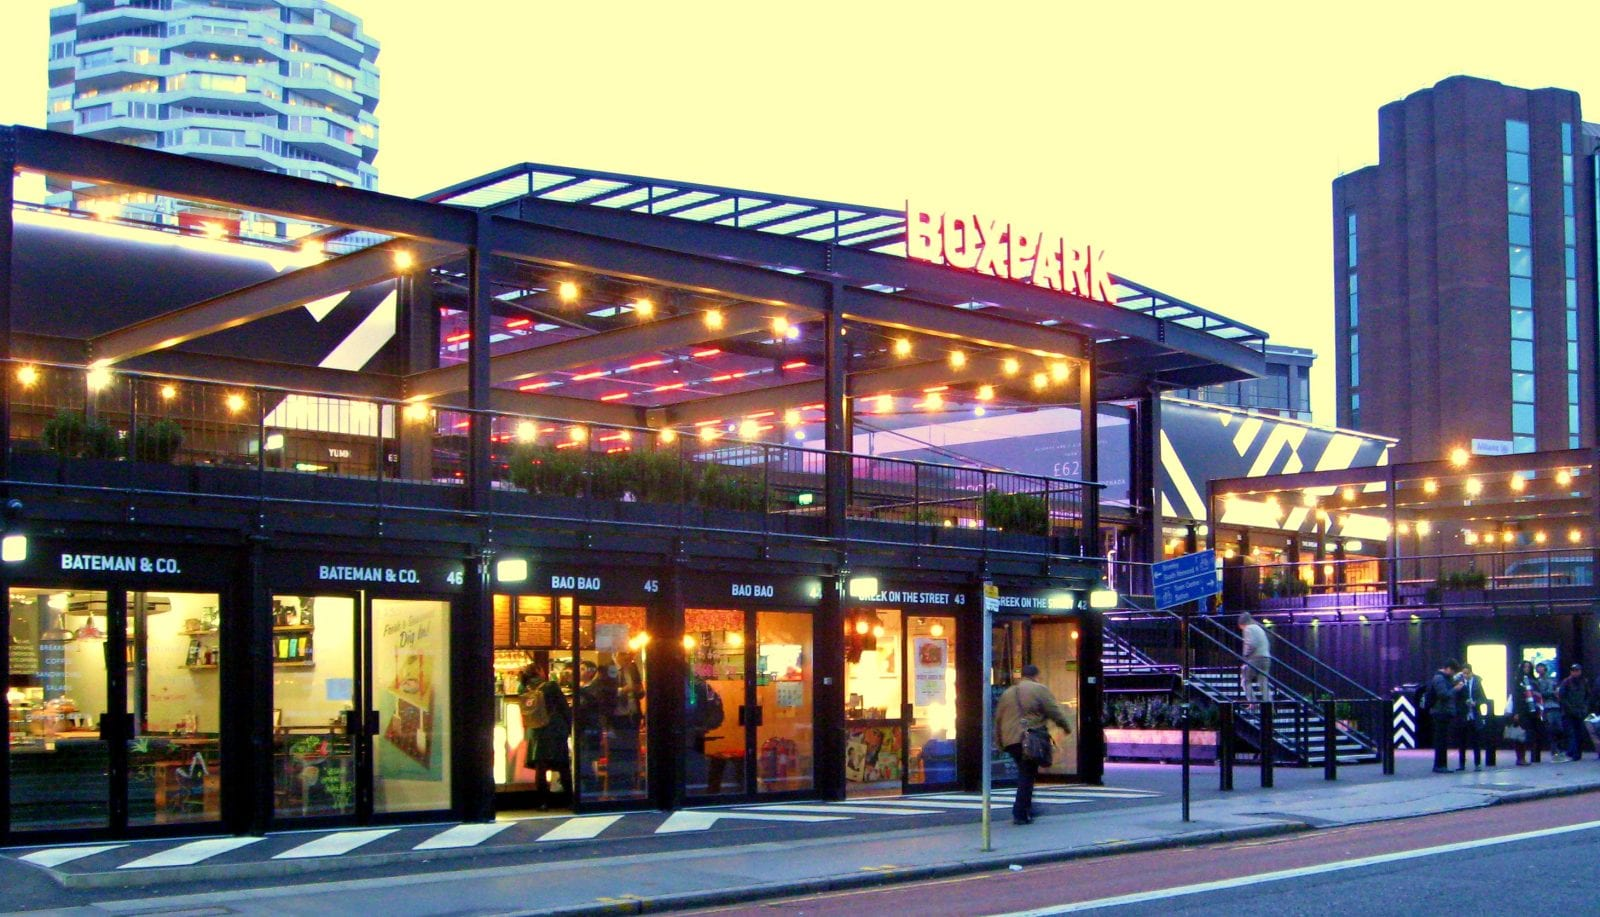 London's famous Boxpark is set for a move to Manchester, The Manc